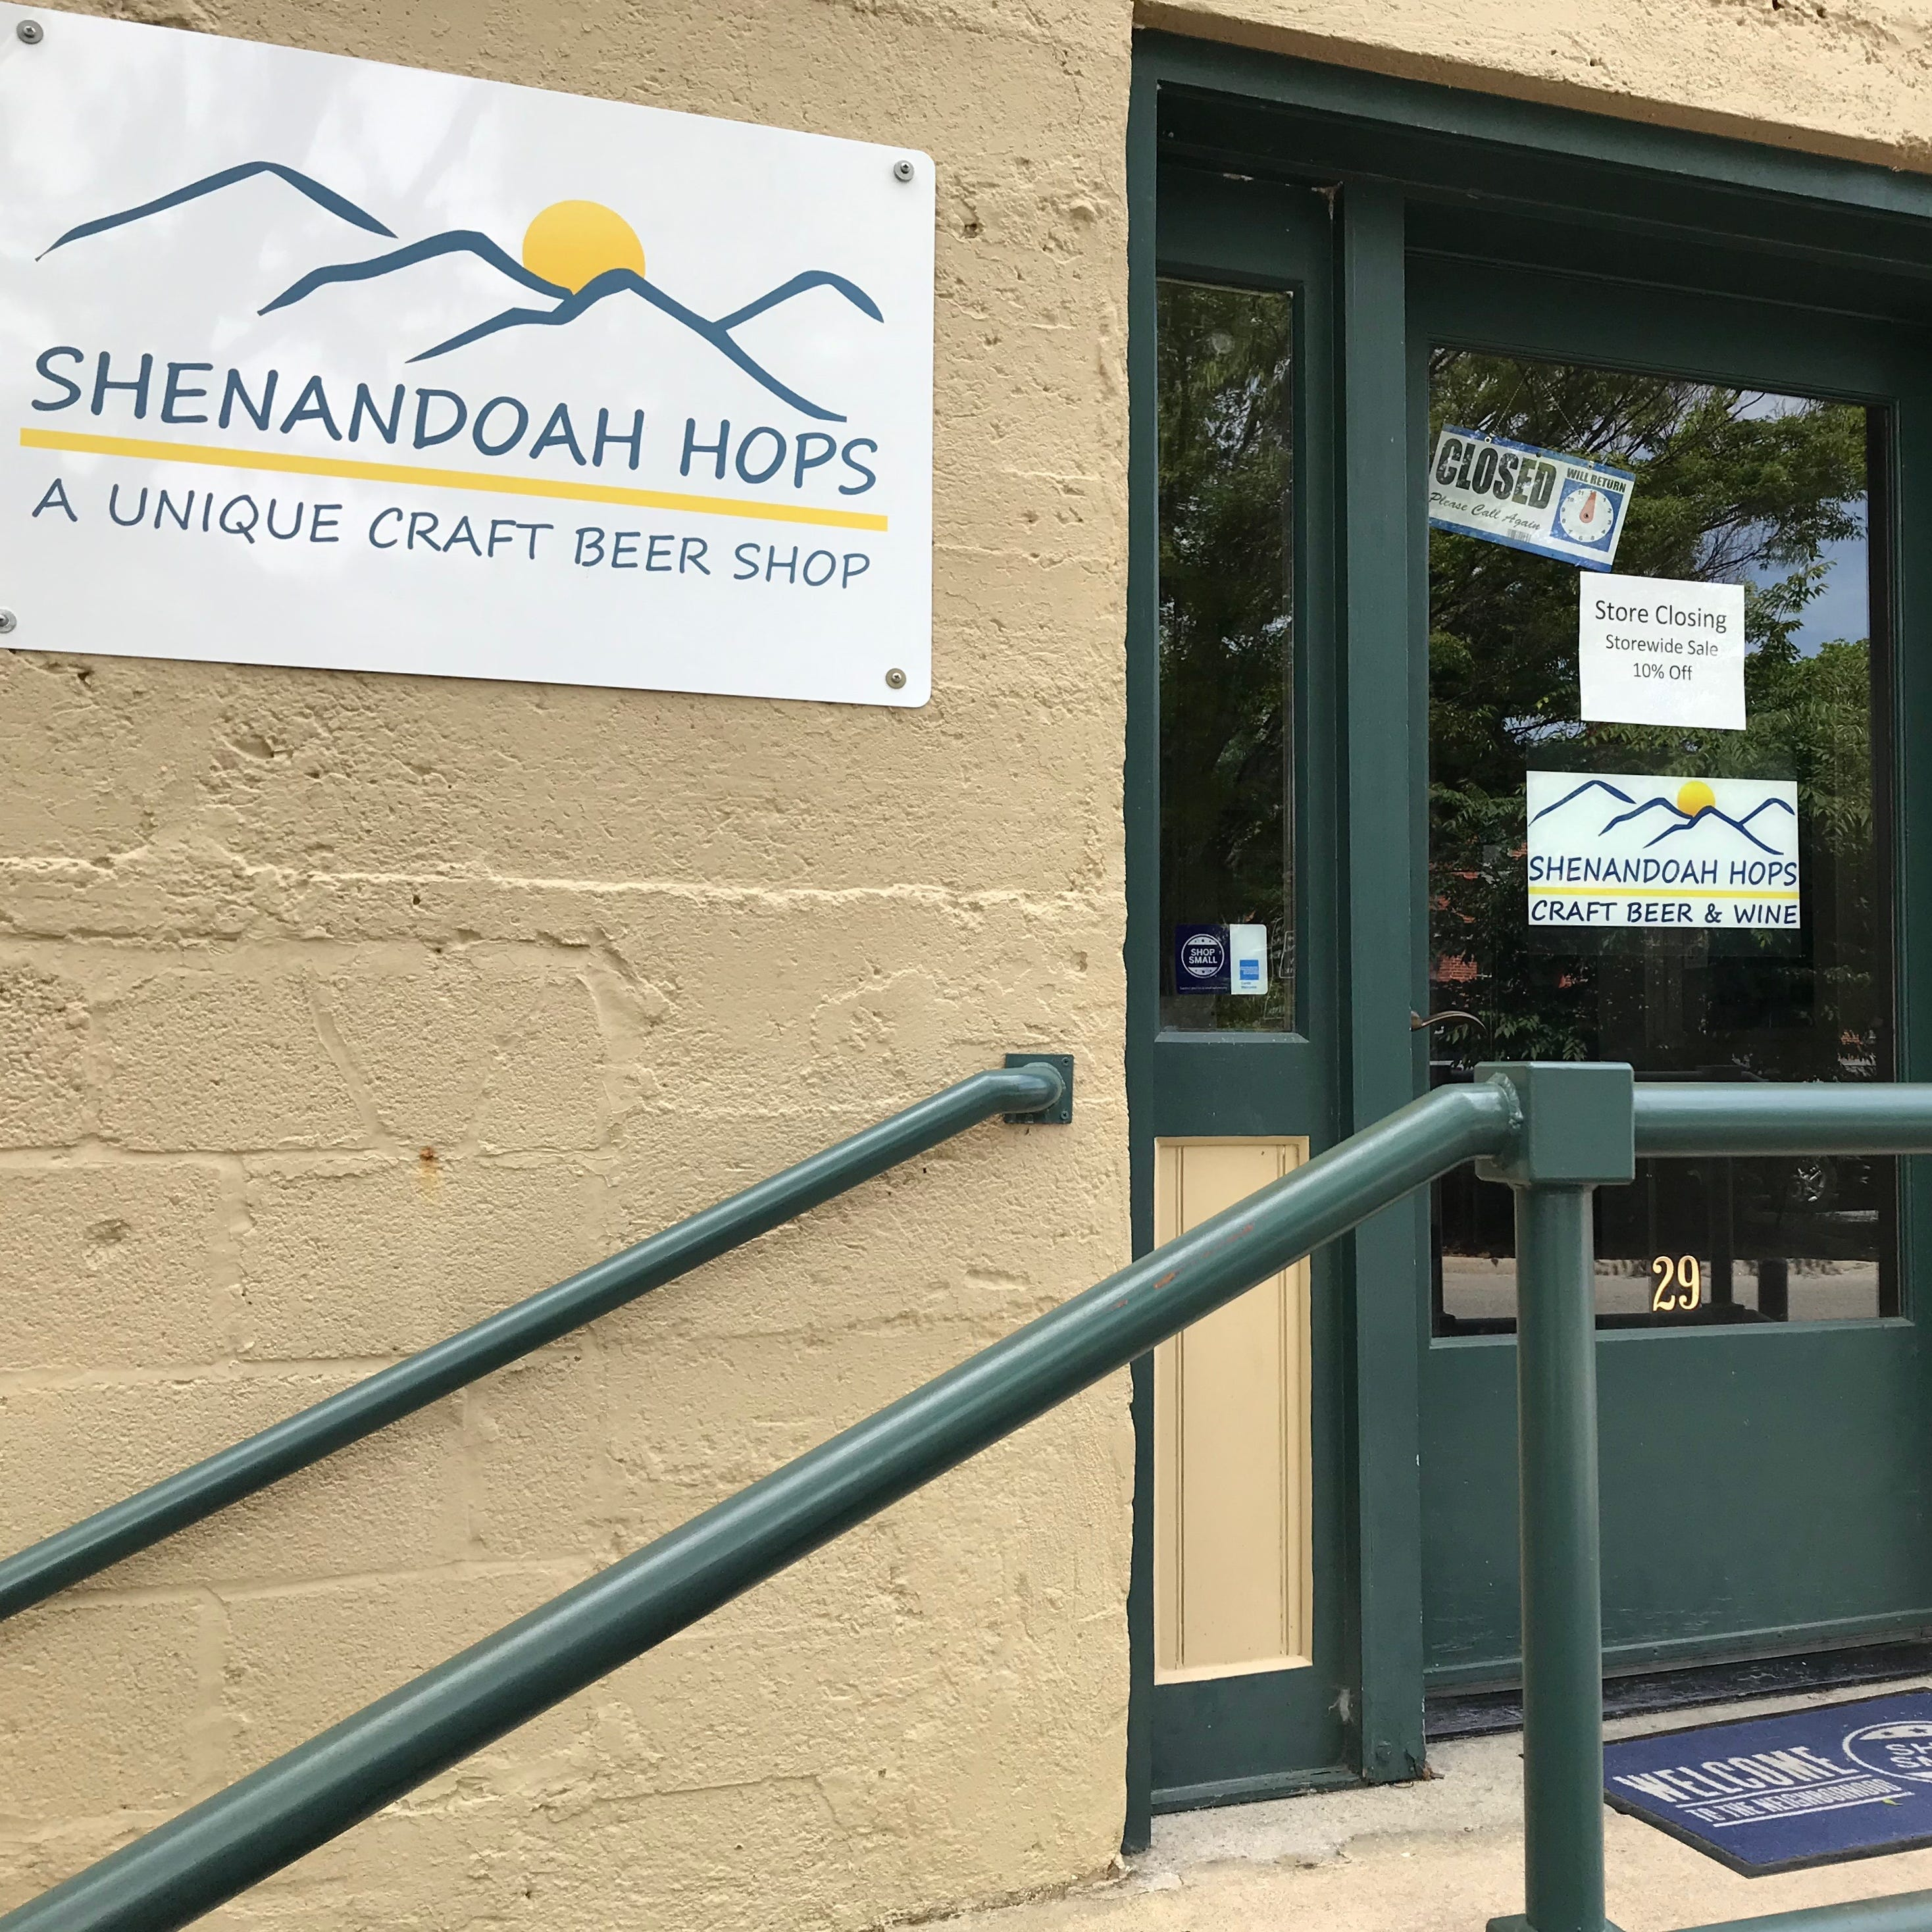 Staunton craft beer store Shenandoah Hops closing